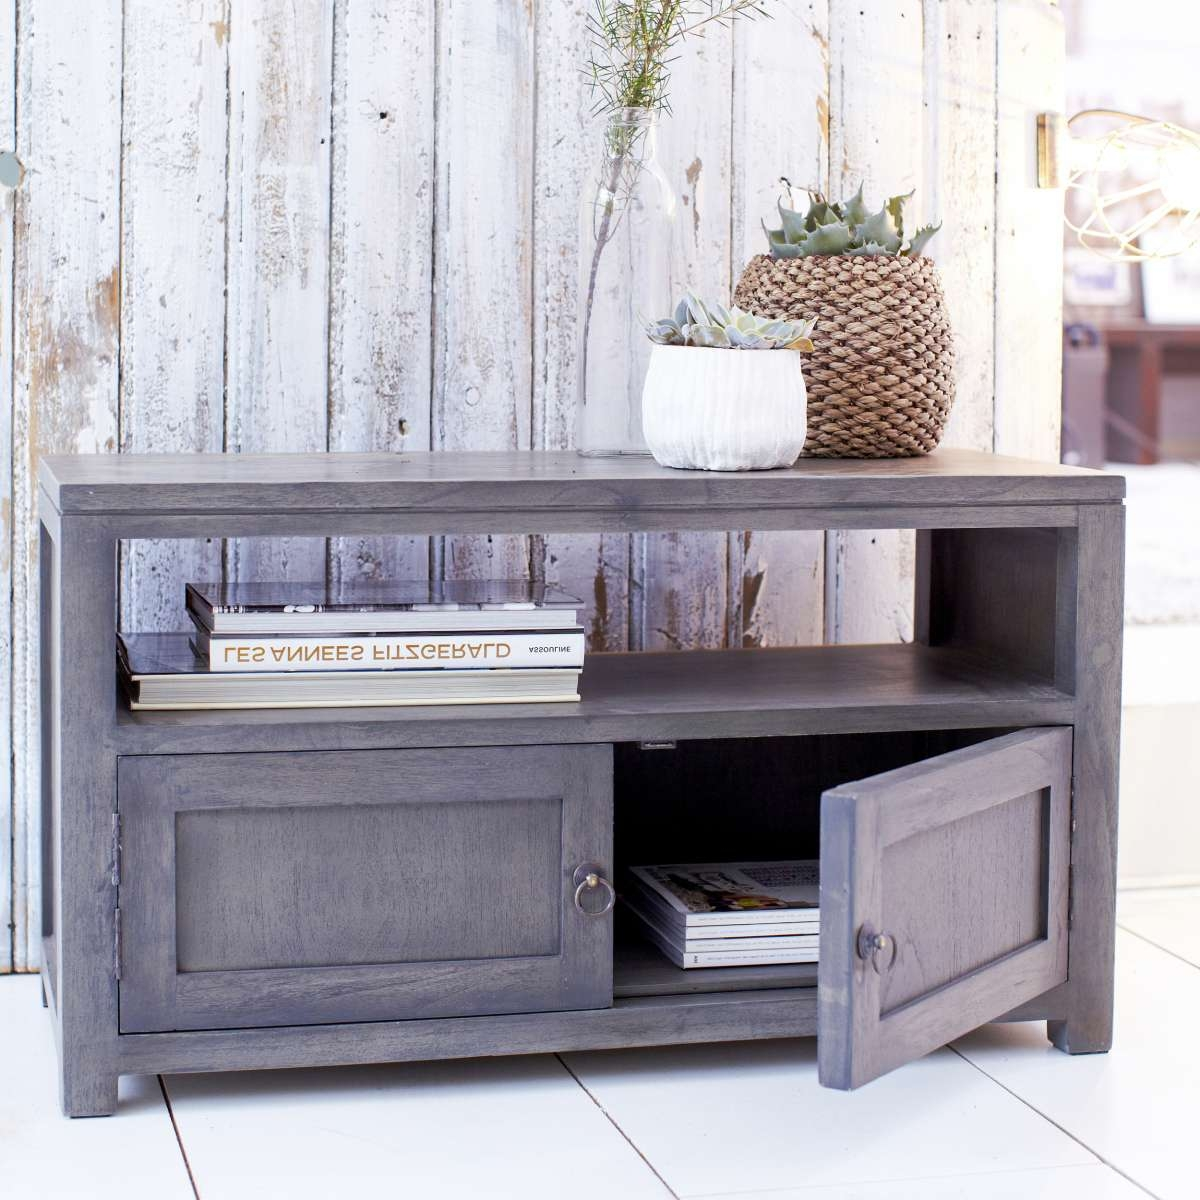 Best Grey Tv Stand : How To Make Grey Tv Stand – Indoor & Outdoor Throughout Grey Tv Stands (View 2 of 15)